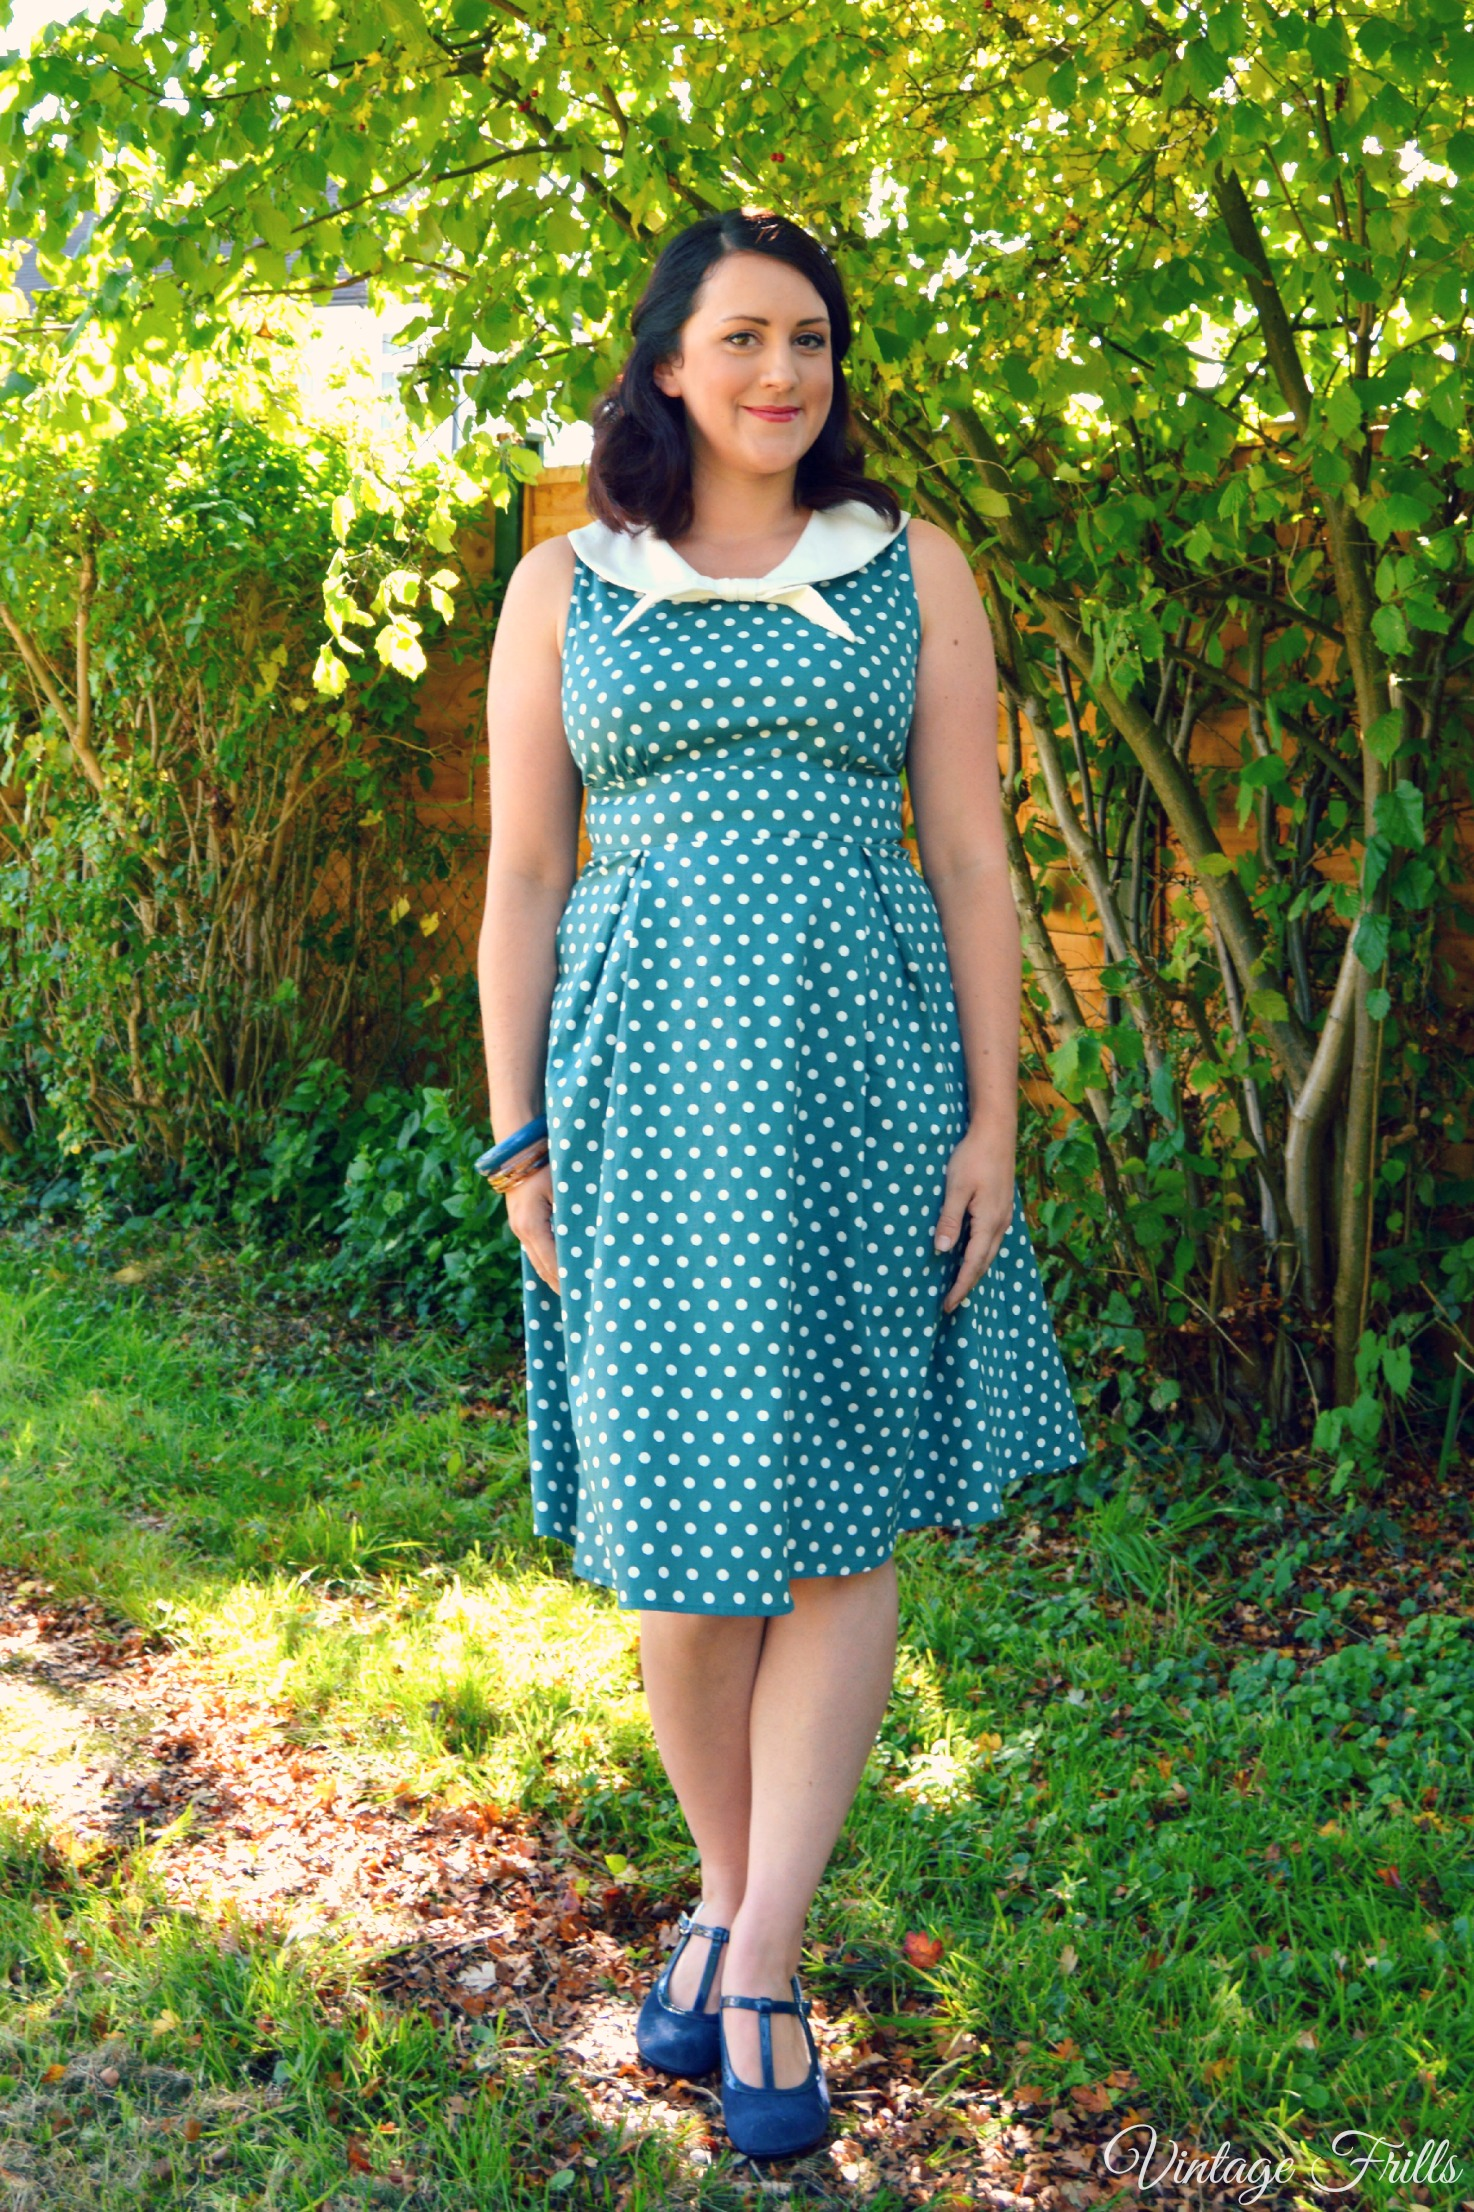 Dolly and Dotty Sally Polka Dot Teal Dress Vintage Frills